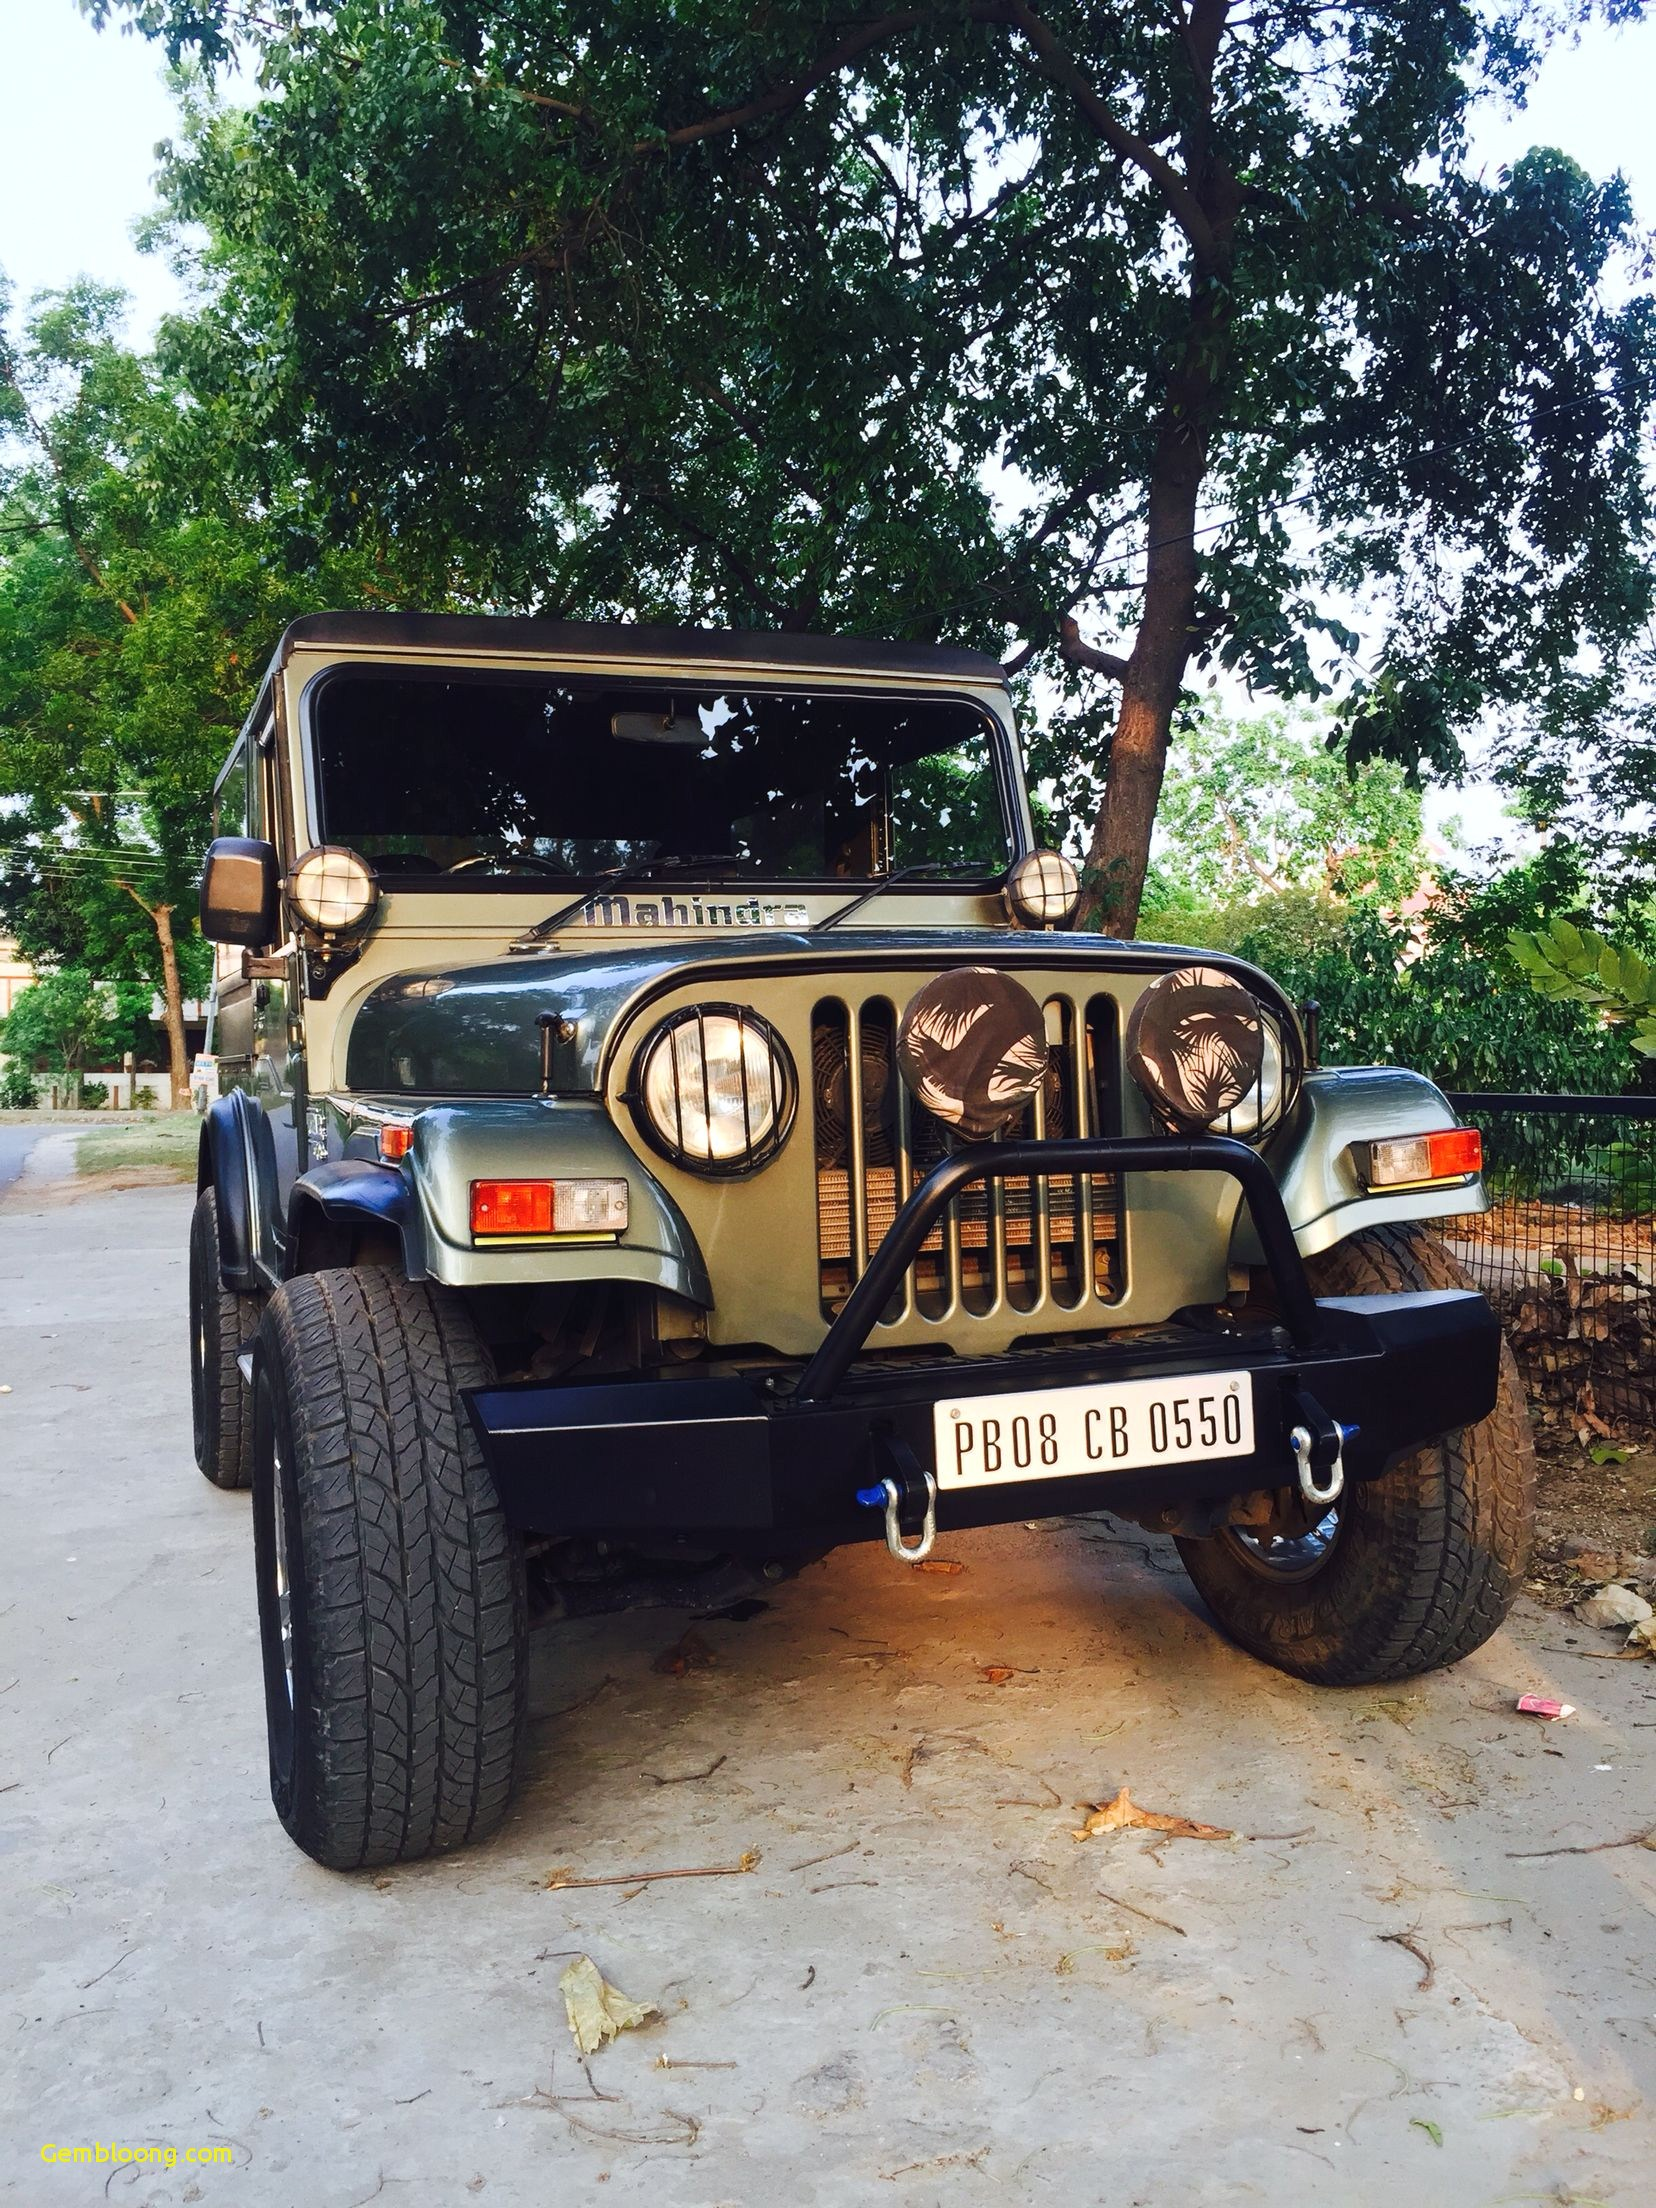 Gallery Jeep Wallpaper For Iphone Awesome Download Rajput Thar 620924 Hd Wallpaper Backgrounds Download